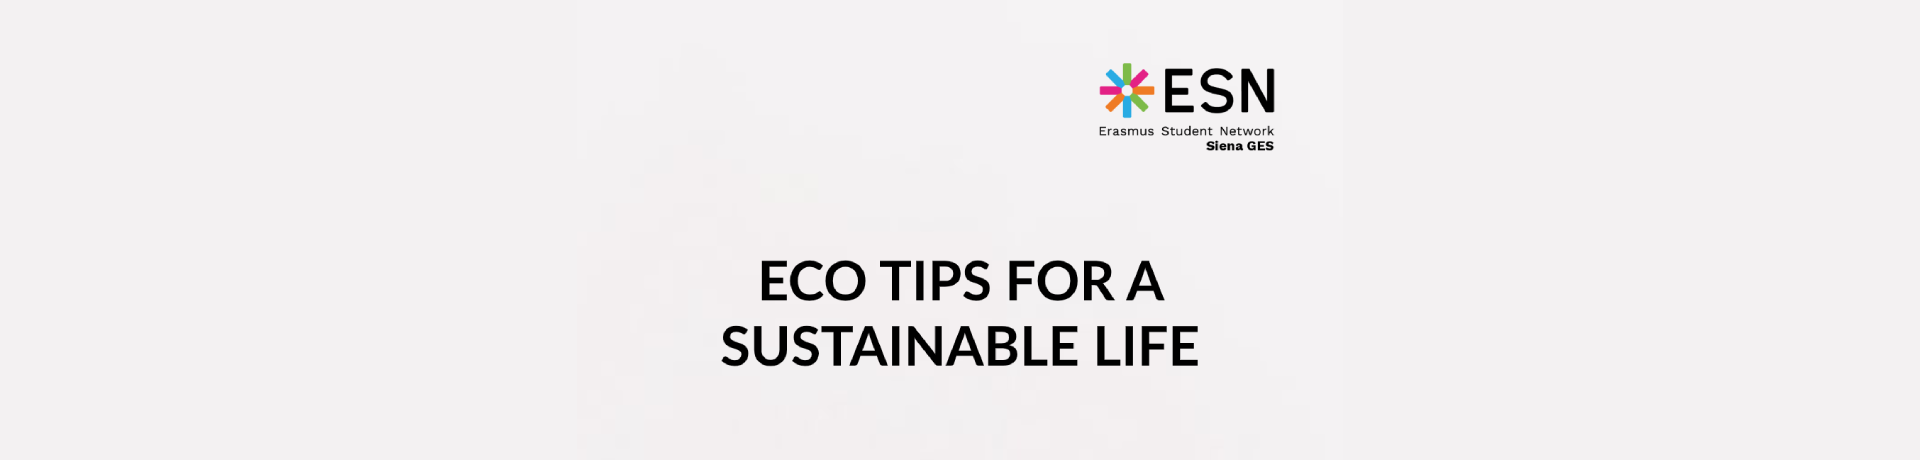 Eco Tips for a Sustainable Life